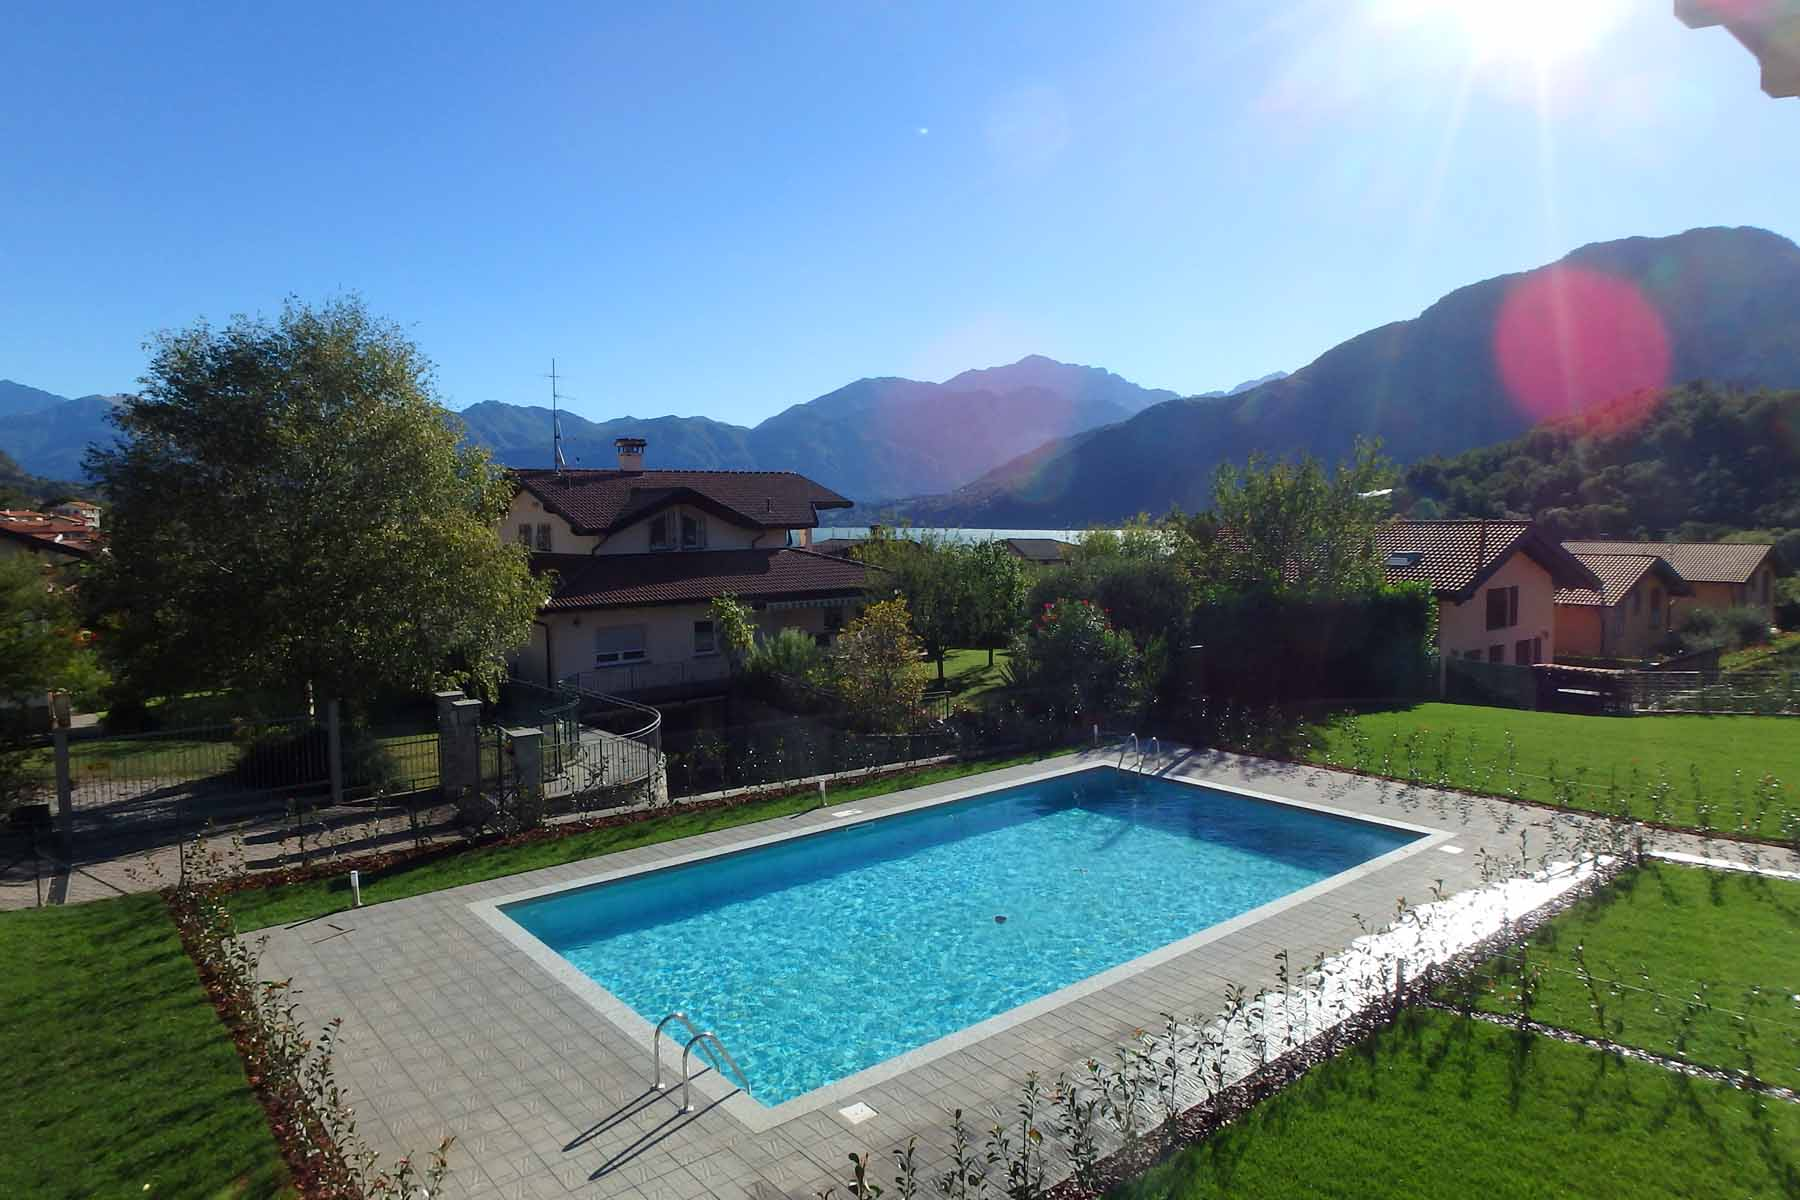 New Residence With Swimming Pool In Lenno